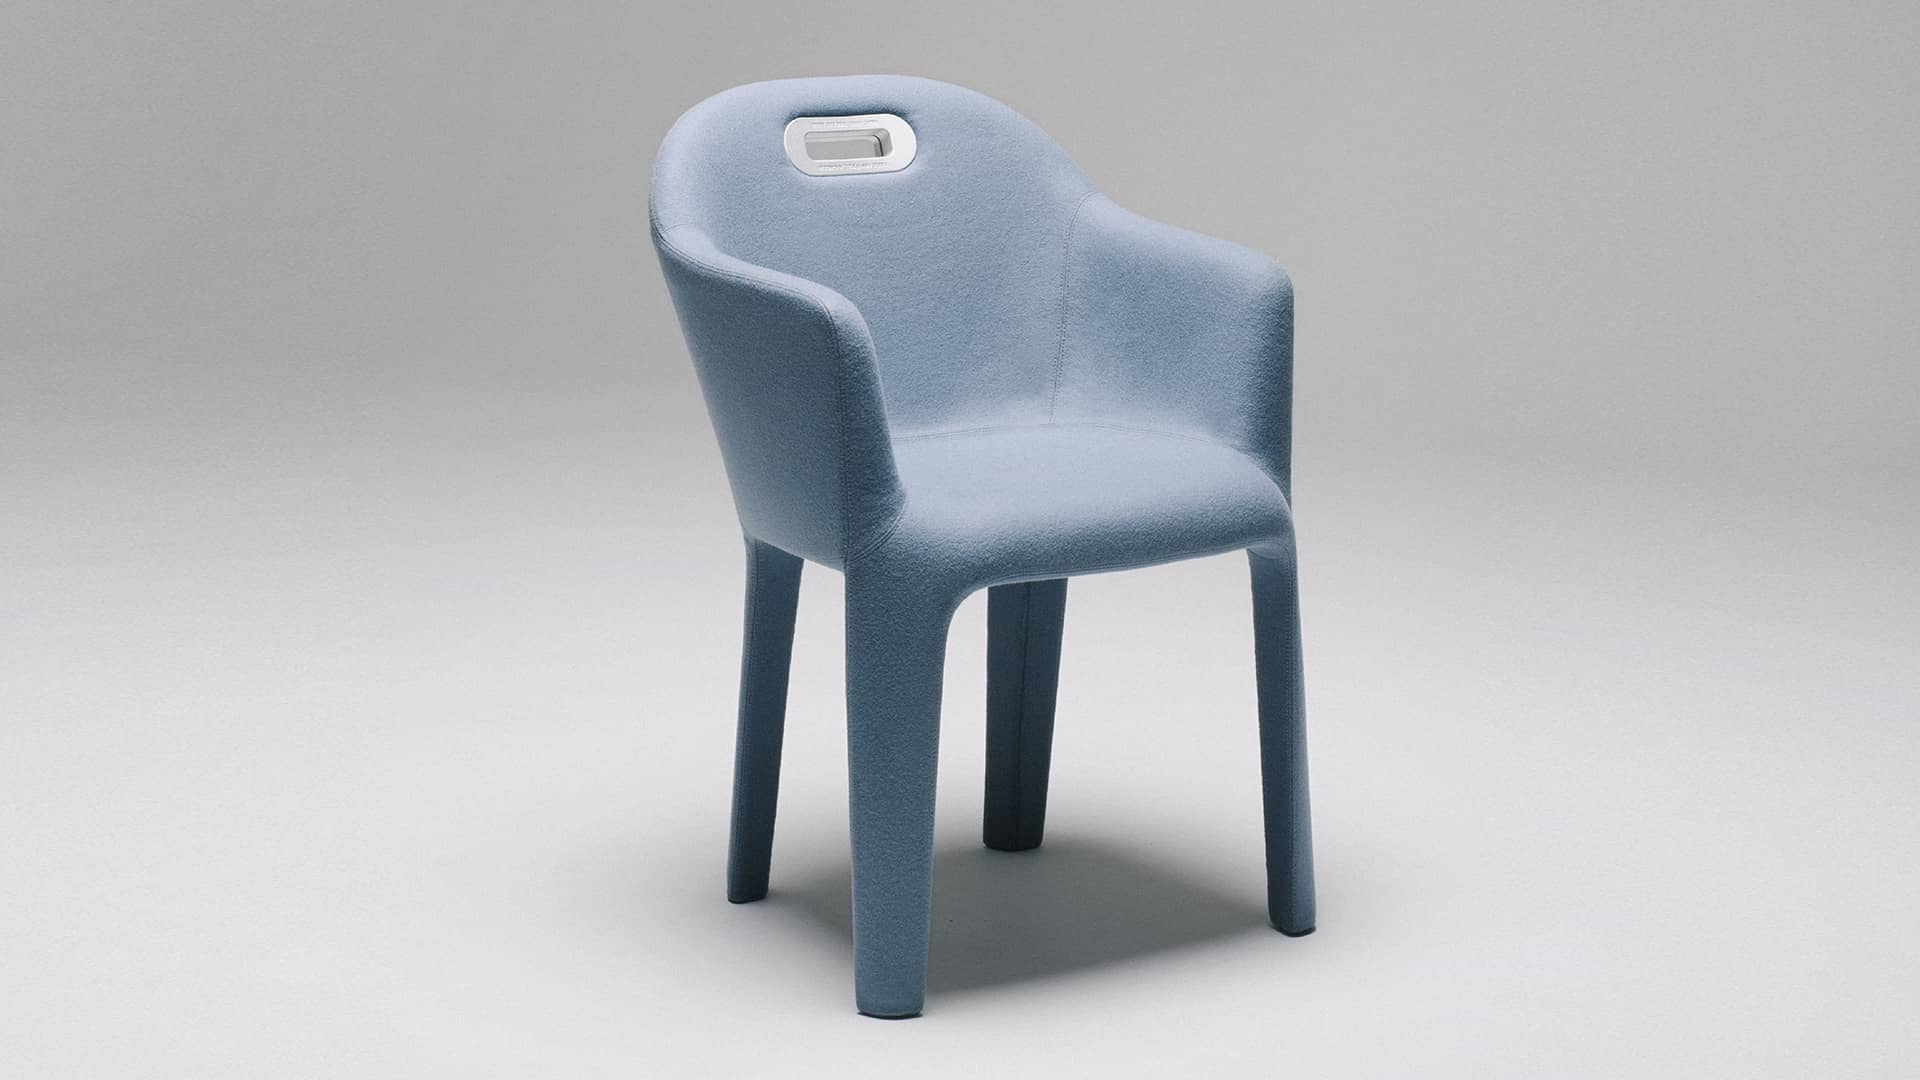 Cross Cultural Chairs on diversifying modern seating at Salone del Mobile 2021